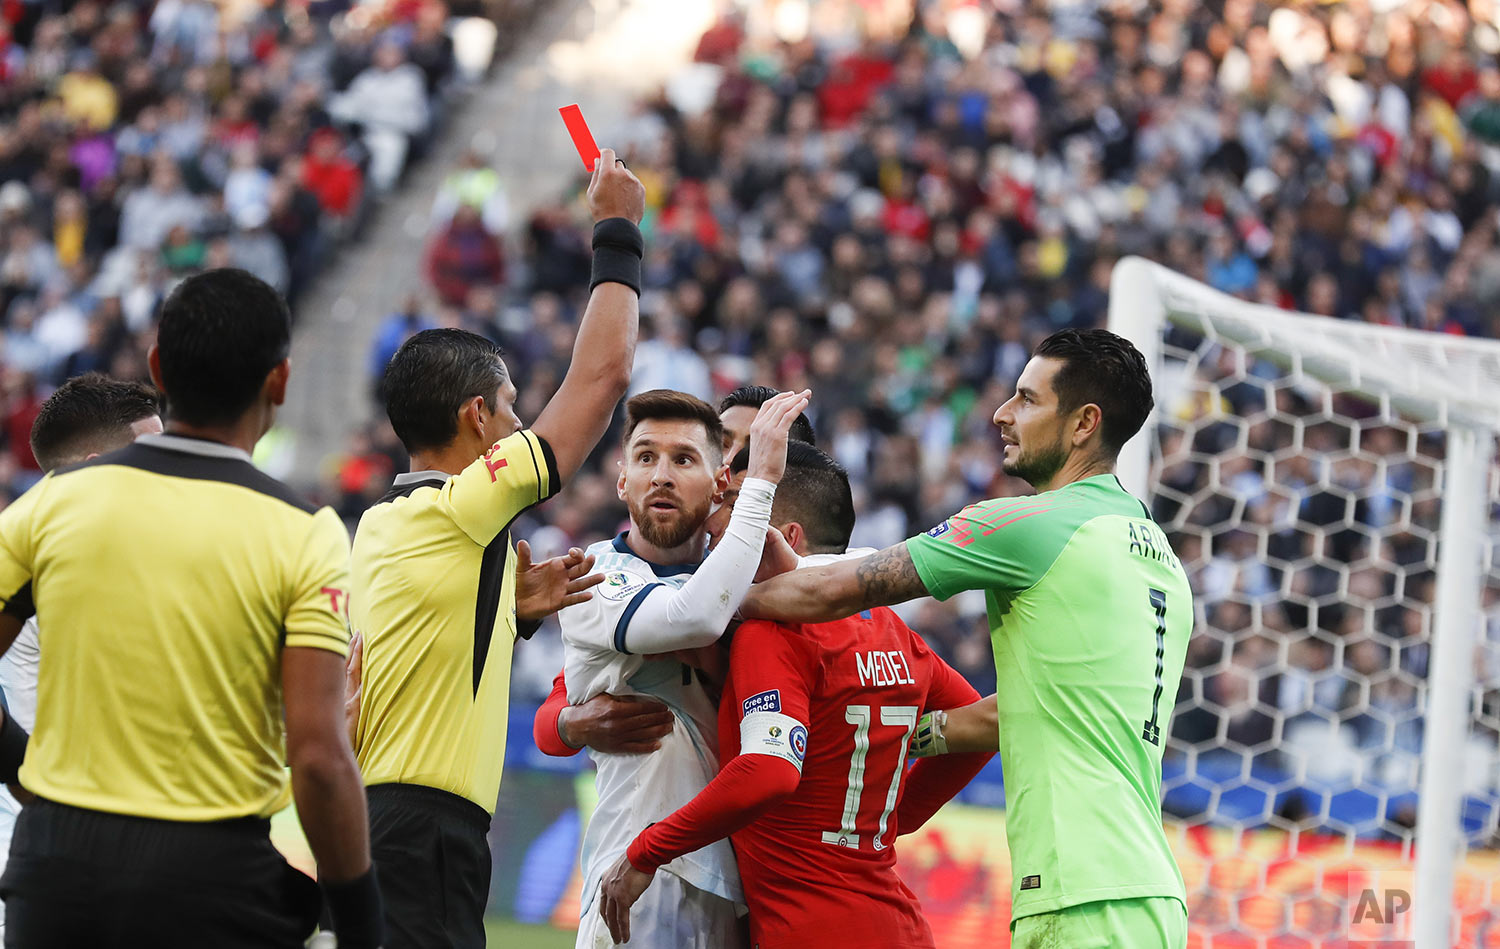 Argentina's Lionel Messi, center left, and Chile's Gary Medel, center right, scuffle as referee Mario Diaz, from Paraguay, shows the red card to both of them during the Copa America third-place soccer match at the Arena Corinthians in Sao Paulo, Brazil, Saturday, July 6, 2019. (AP Photo/Victor R. Caivano)